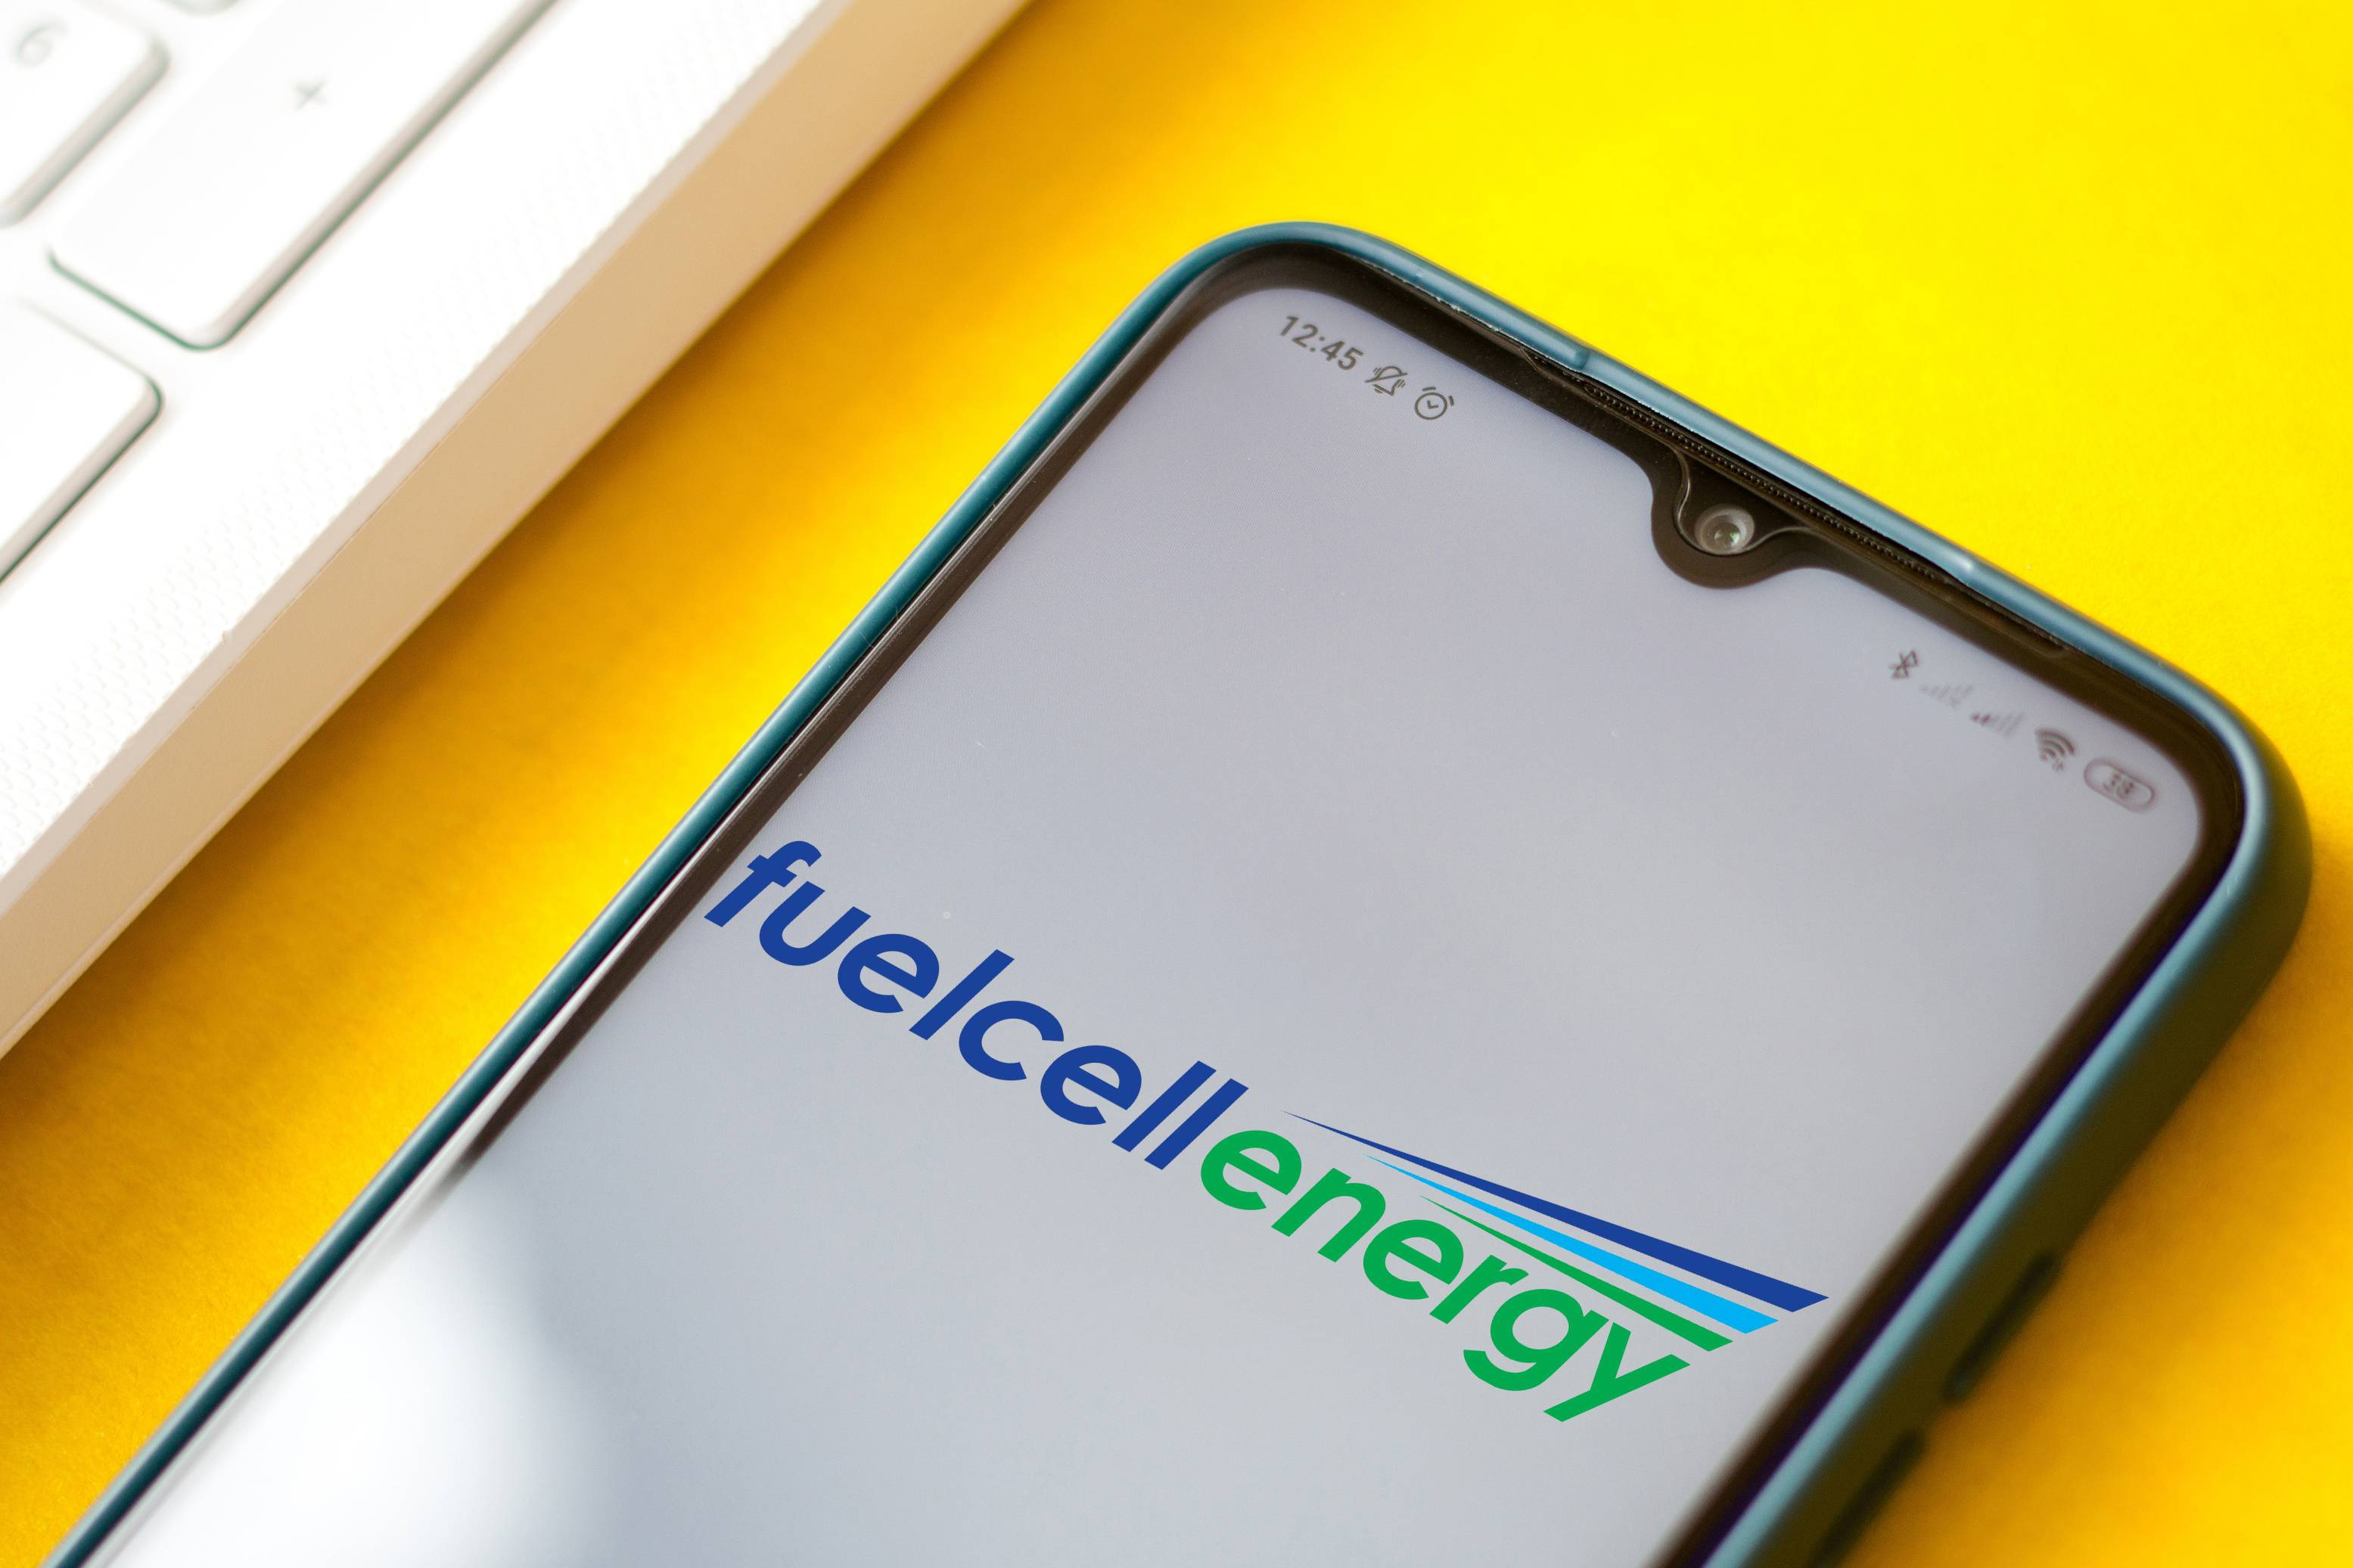 FuelCell stock forecast (NASDAQ: FCEL) – will the stock bounce back?